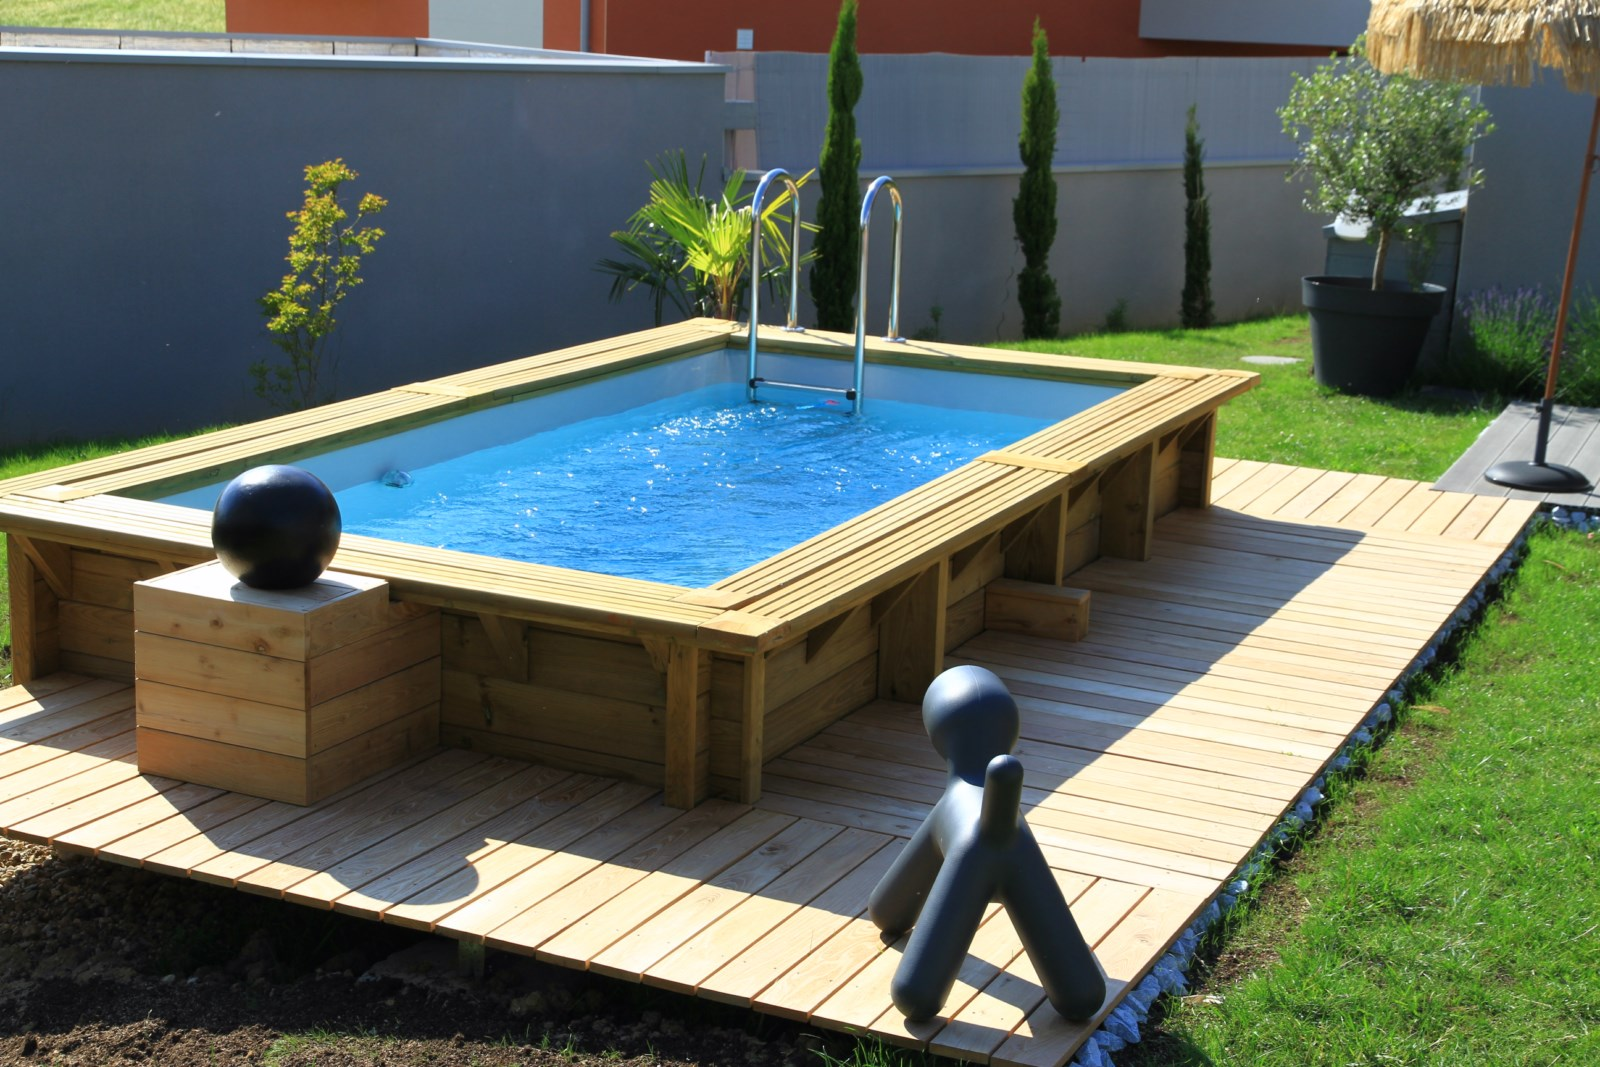 Amenagement jardin avec piscine hors sol io09 jornalagora - Amenagement piscine hors sol photo besancon ...